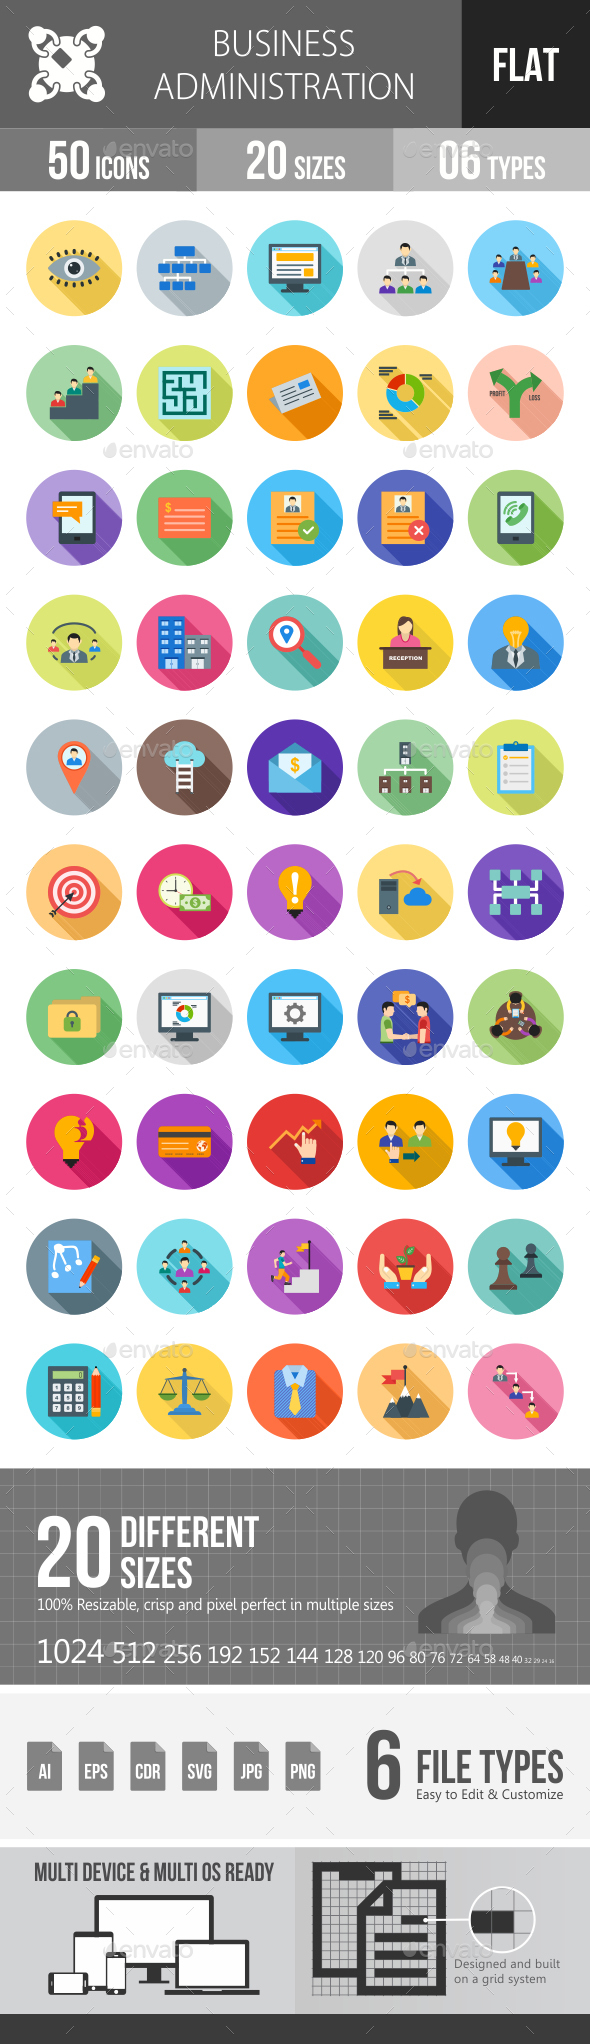 Business Administration Flat Shadowed Icons - Icons